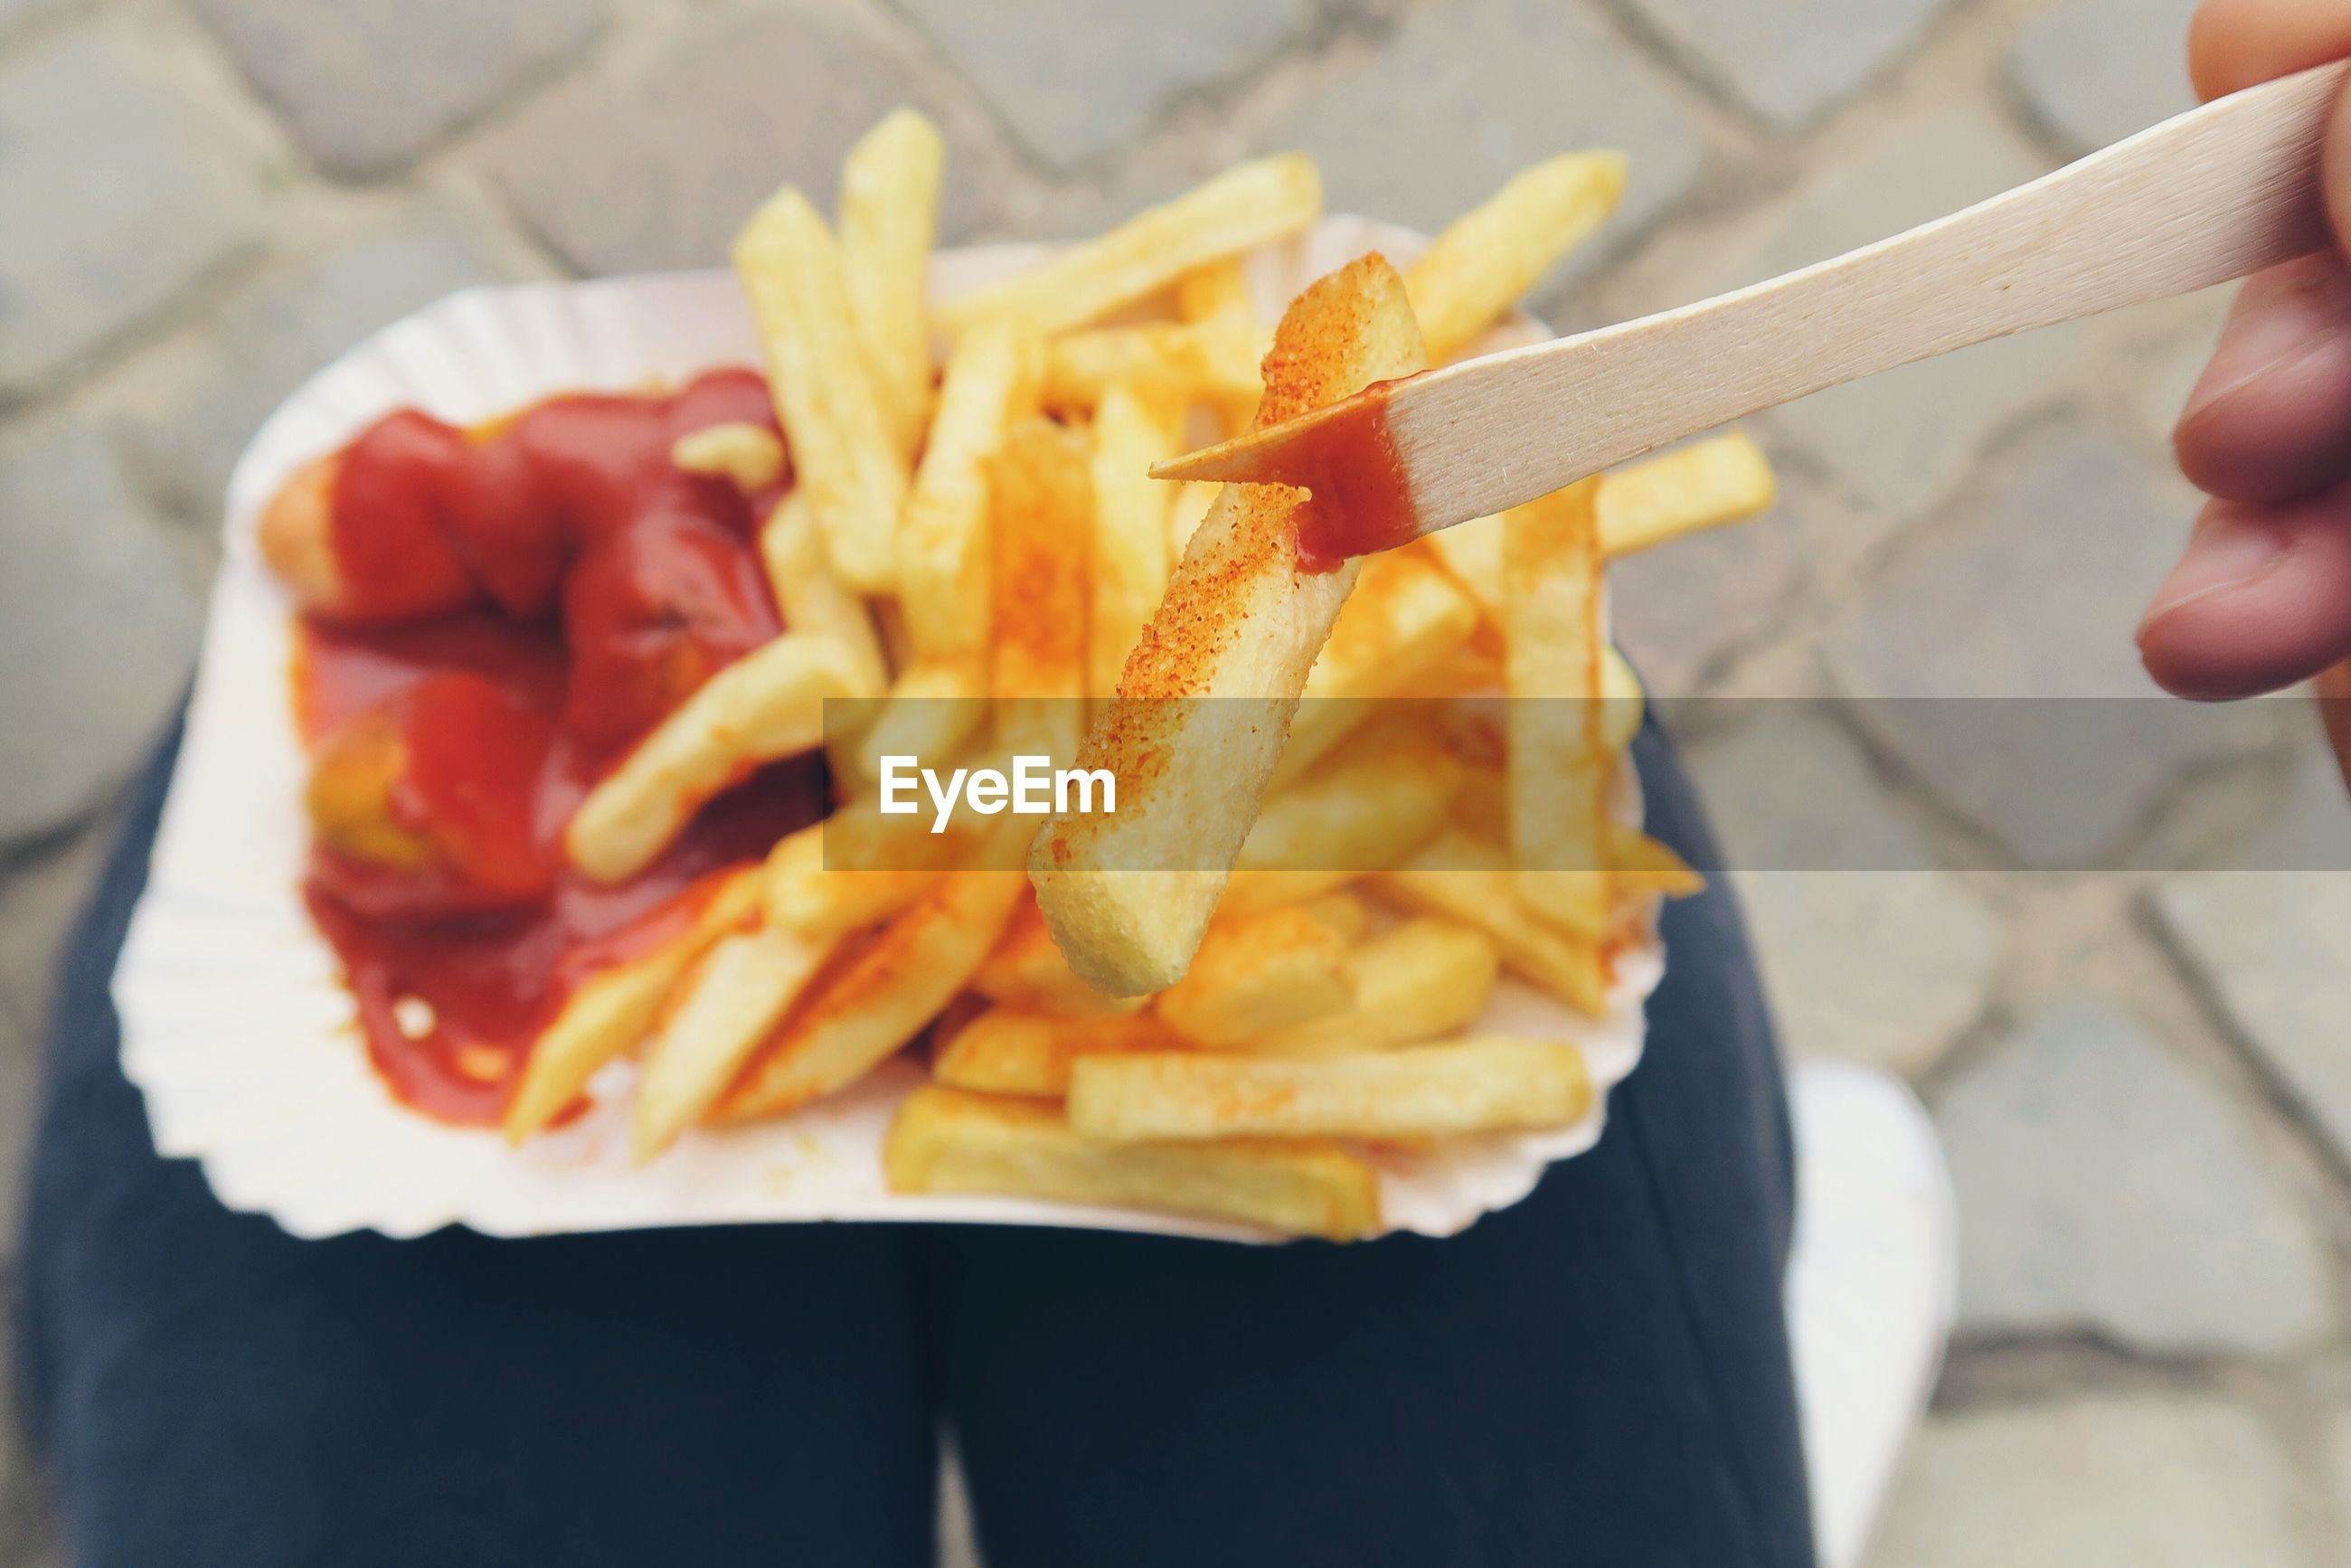 Close-up of person eating currywurst